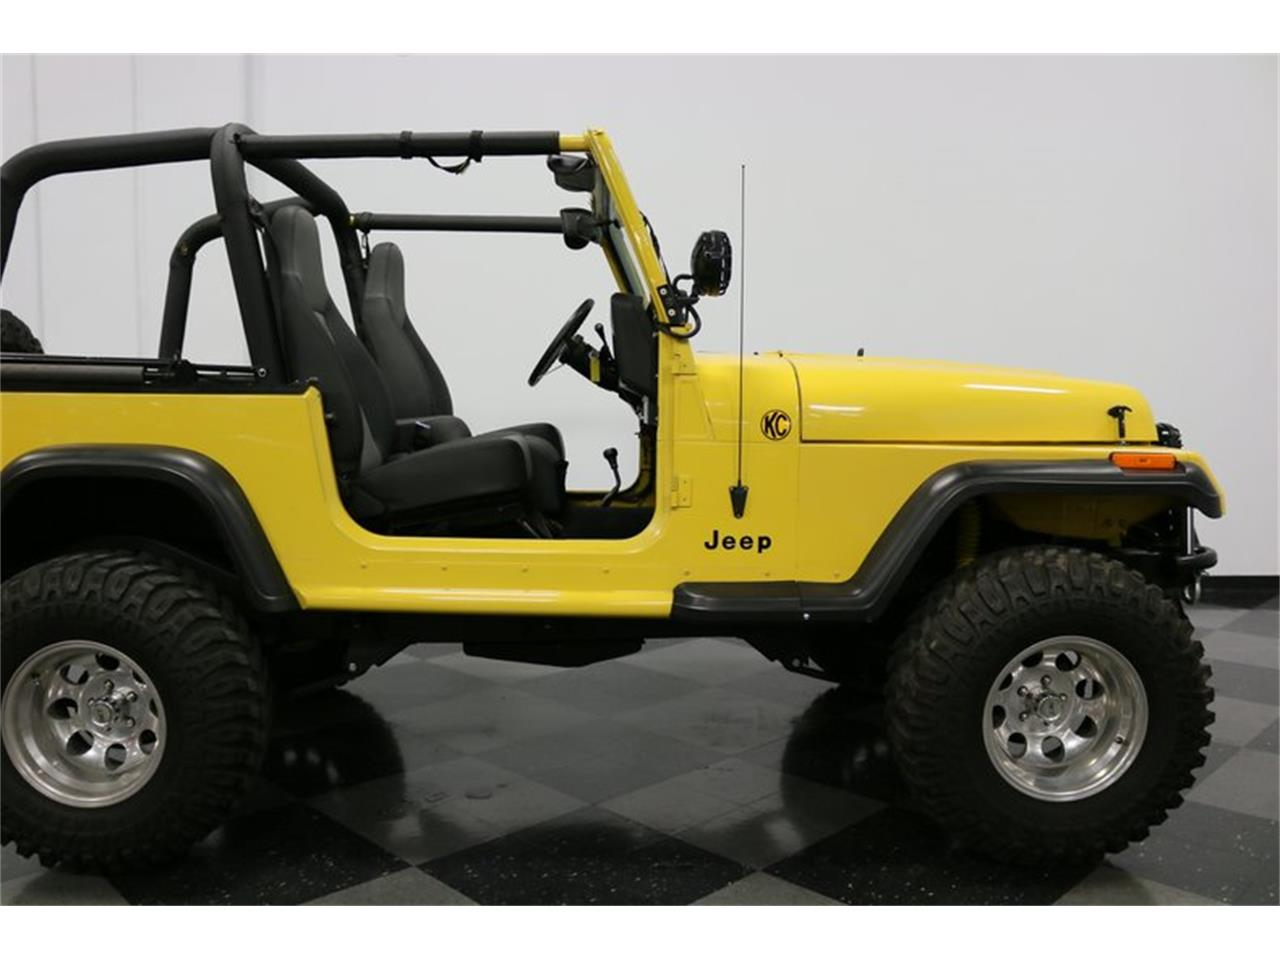 Large Picture of '93 Wrangler located in Ft Worth Texas - $21,995.00 Offered by Streetside Classics - Dallas / Fort Worth - P701